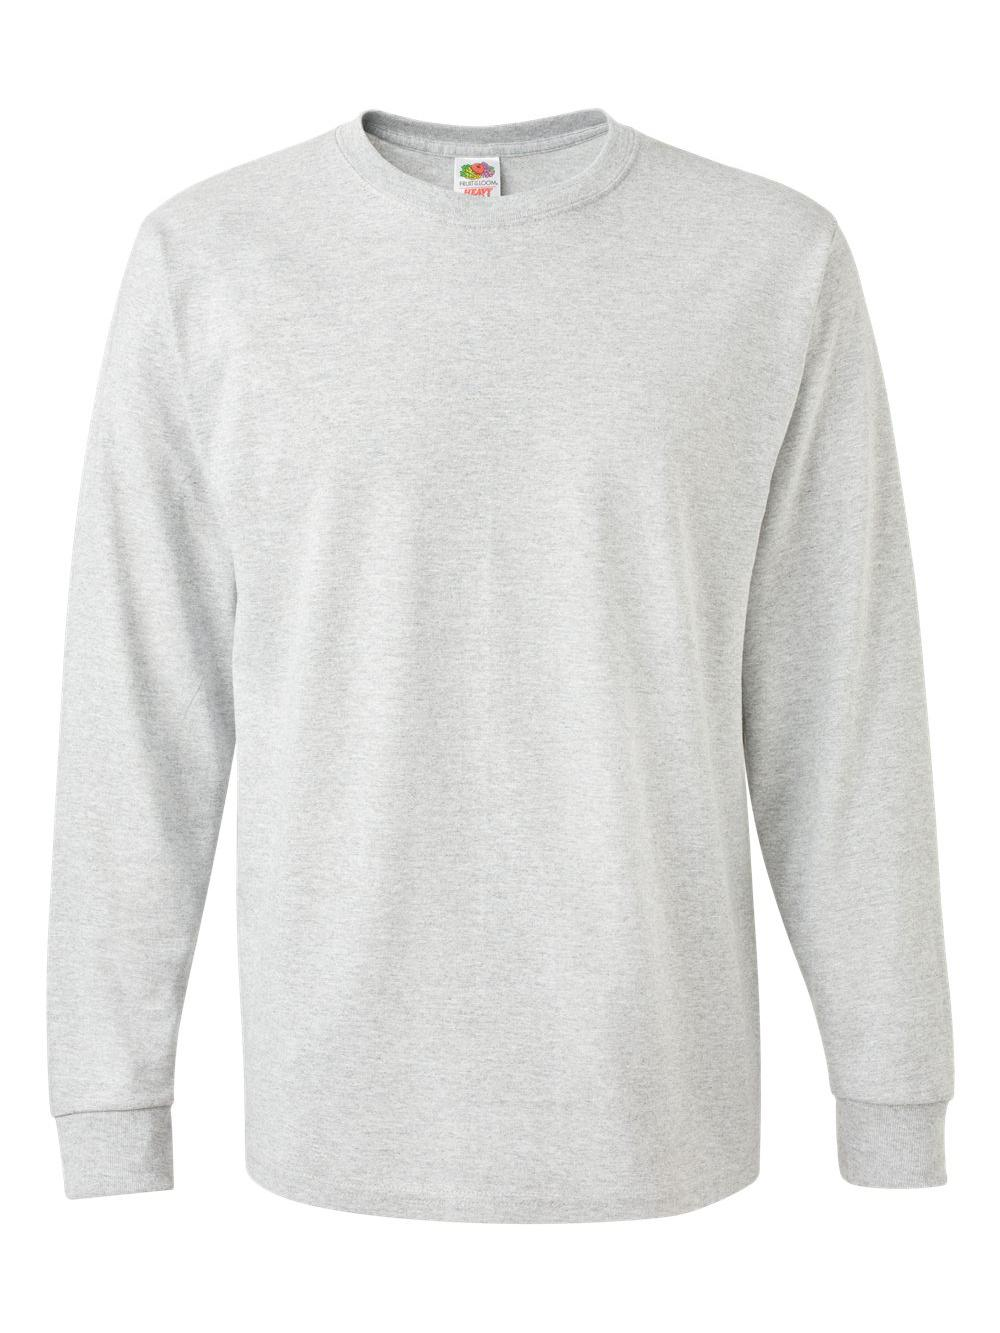 Fruit-of-the-Loom-HD-Cotton-Long-Sleeve-T-Shirt-4930R thumbnail 3